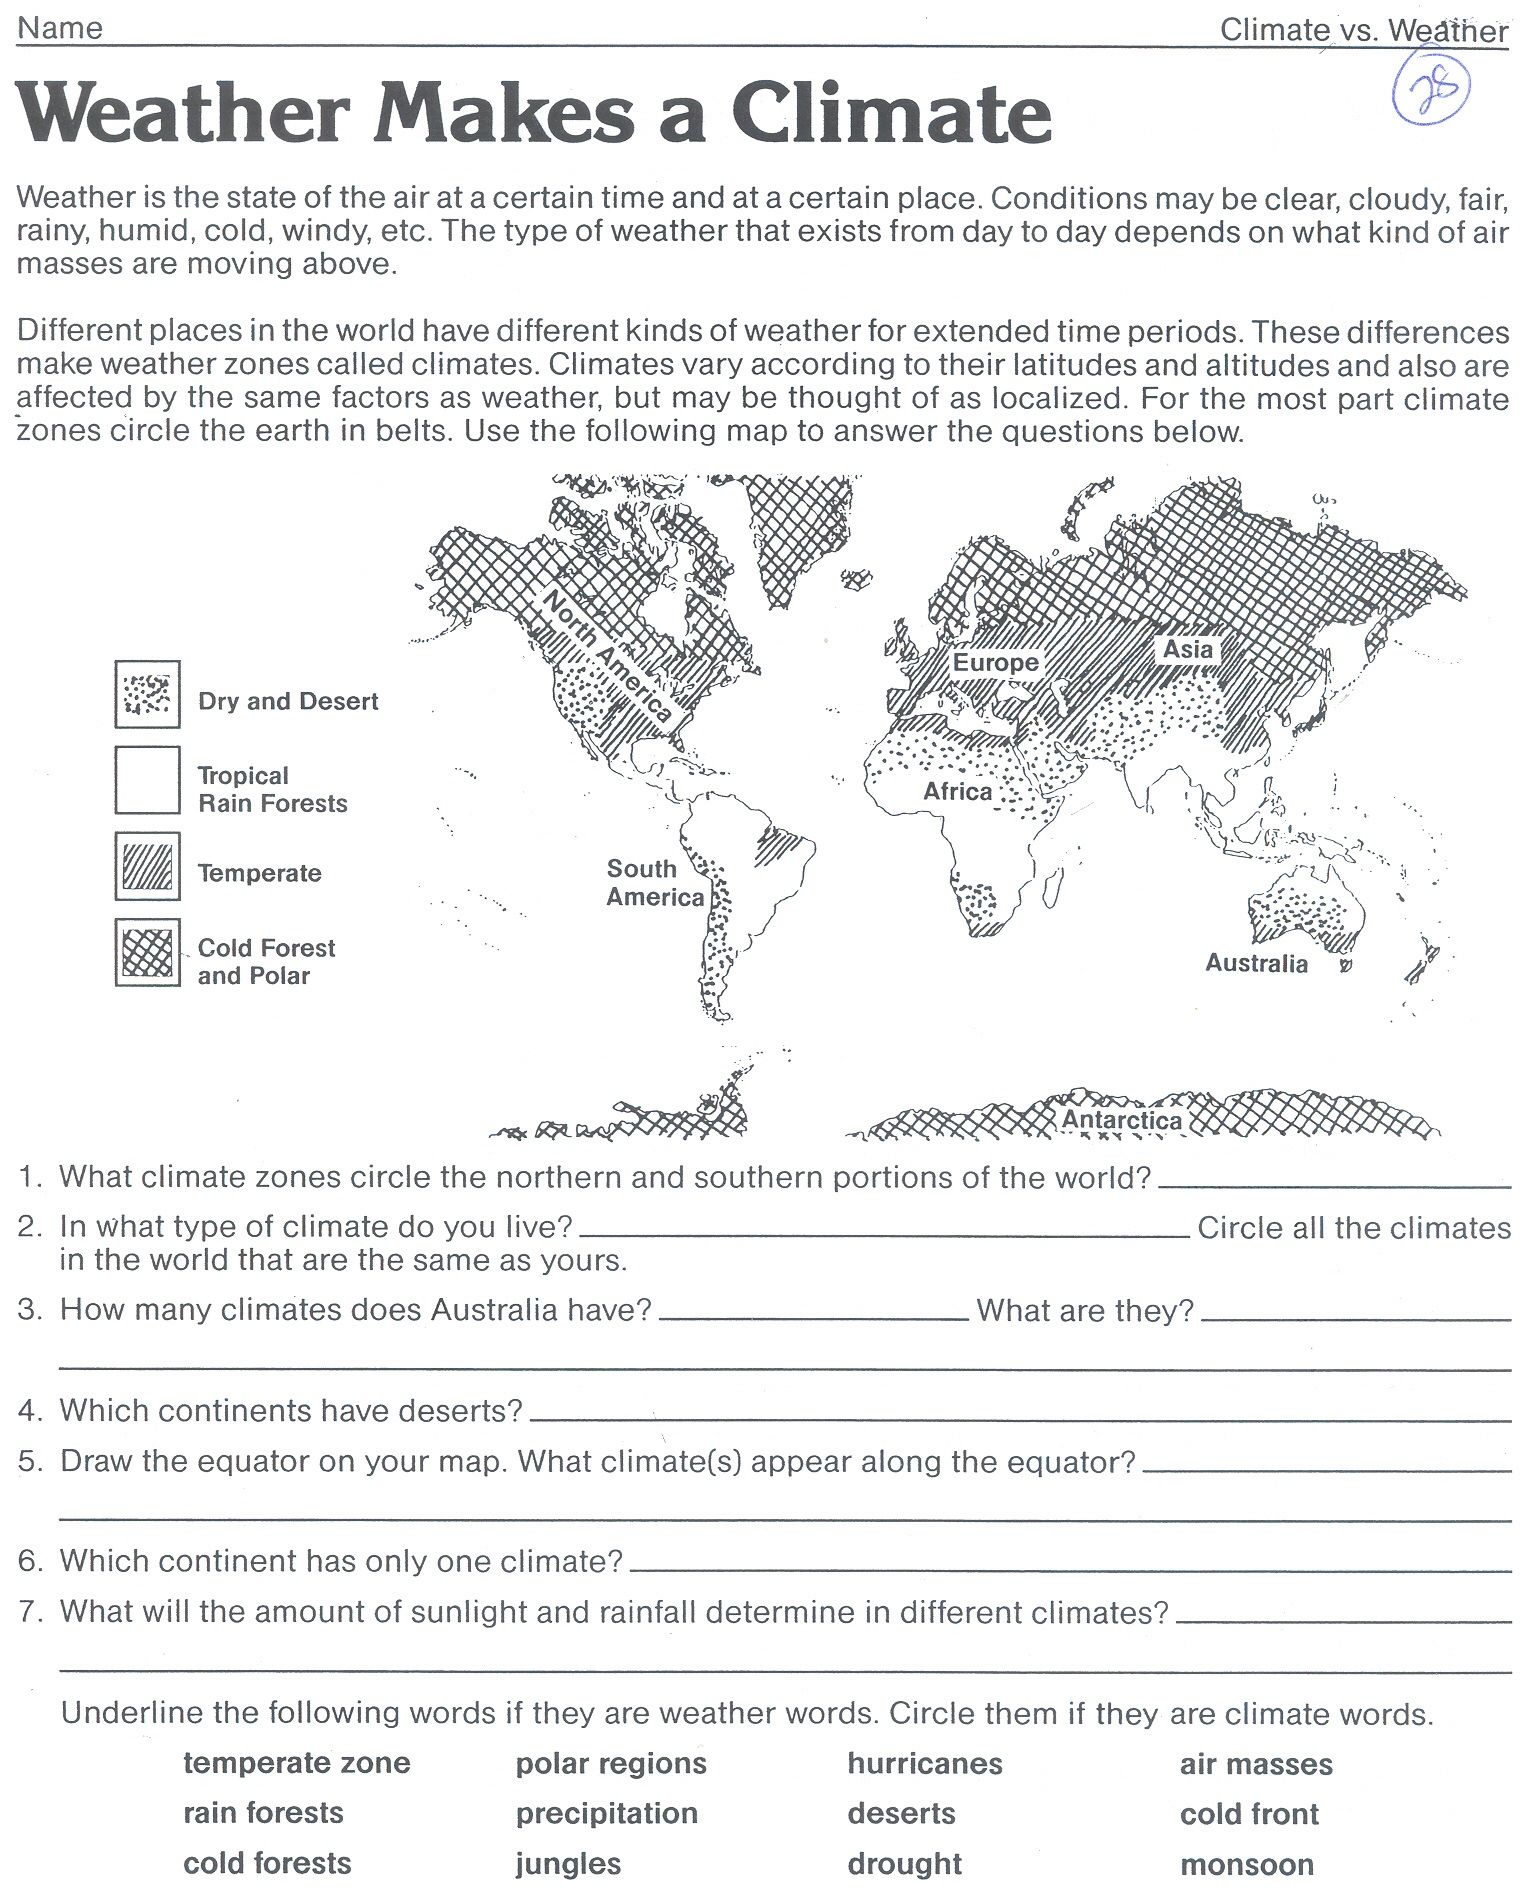 Worksheets Climate Worksheet weather makes a climate worksheet science activities pinterest worksheet